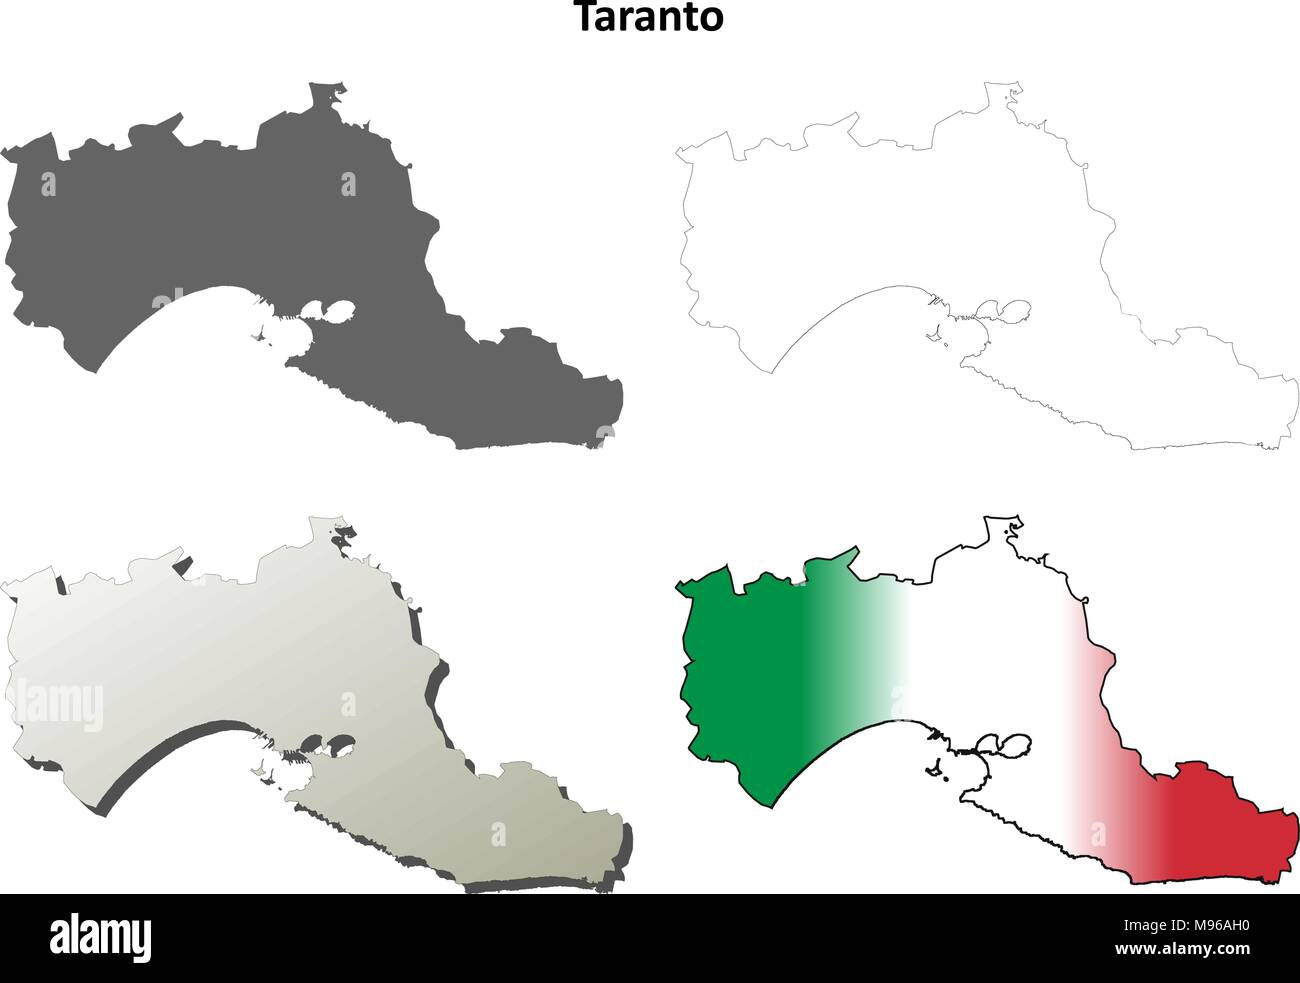 Taranto Map Stock Photos Taranto Map Stock Images Alamy